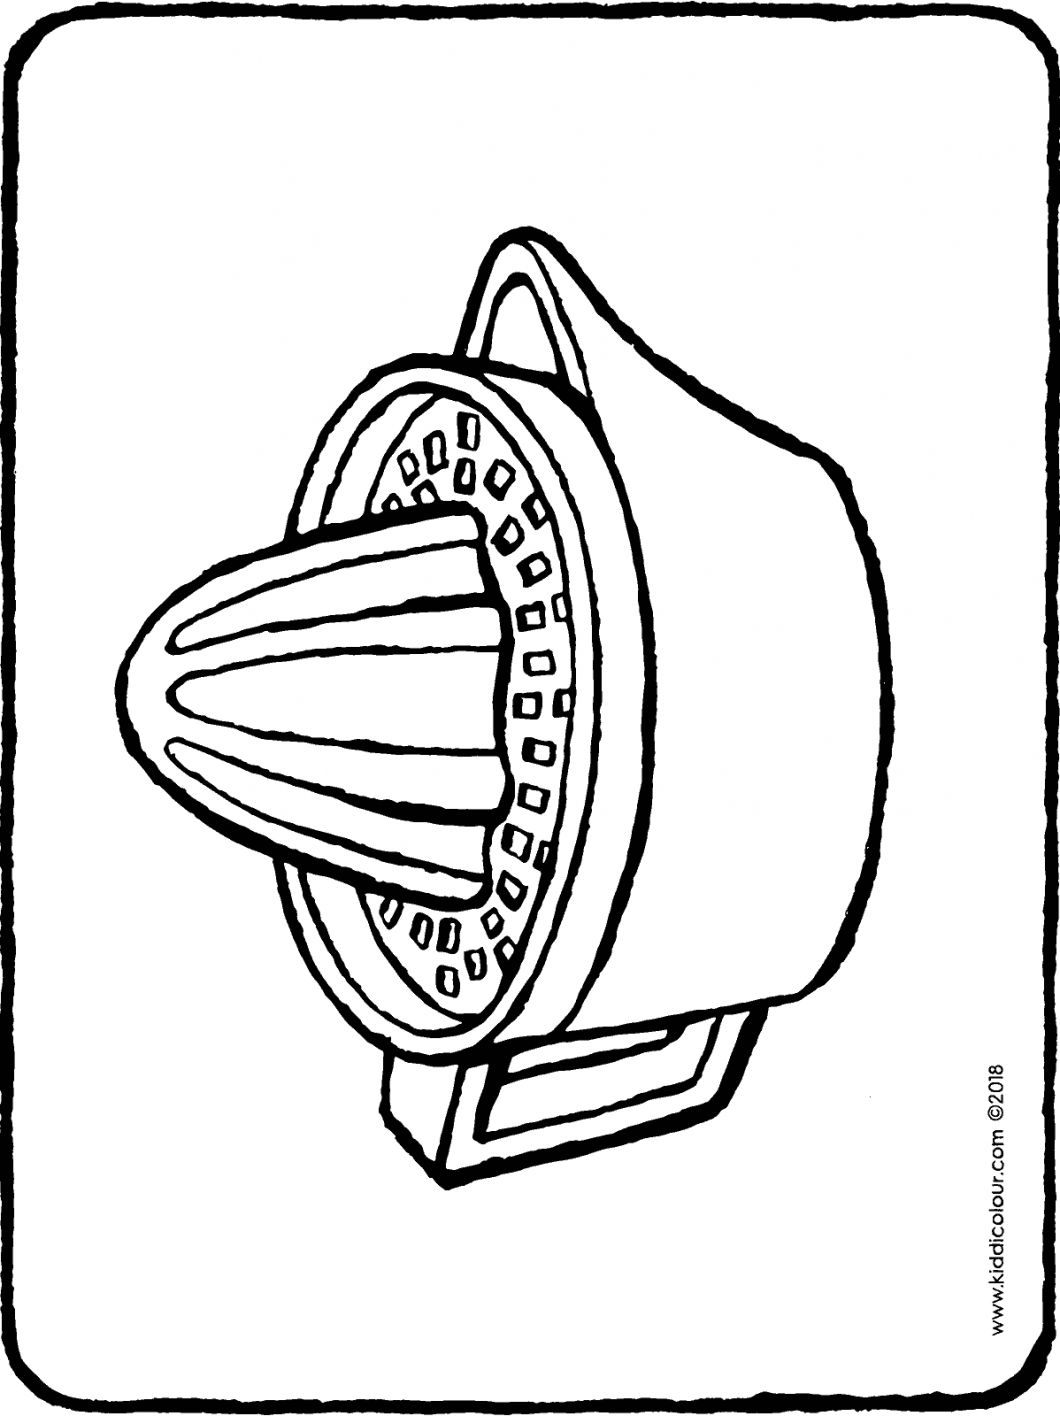 juicer colouring page drawing picture 01H